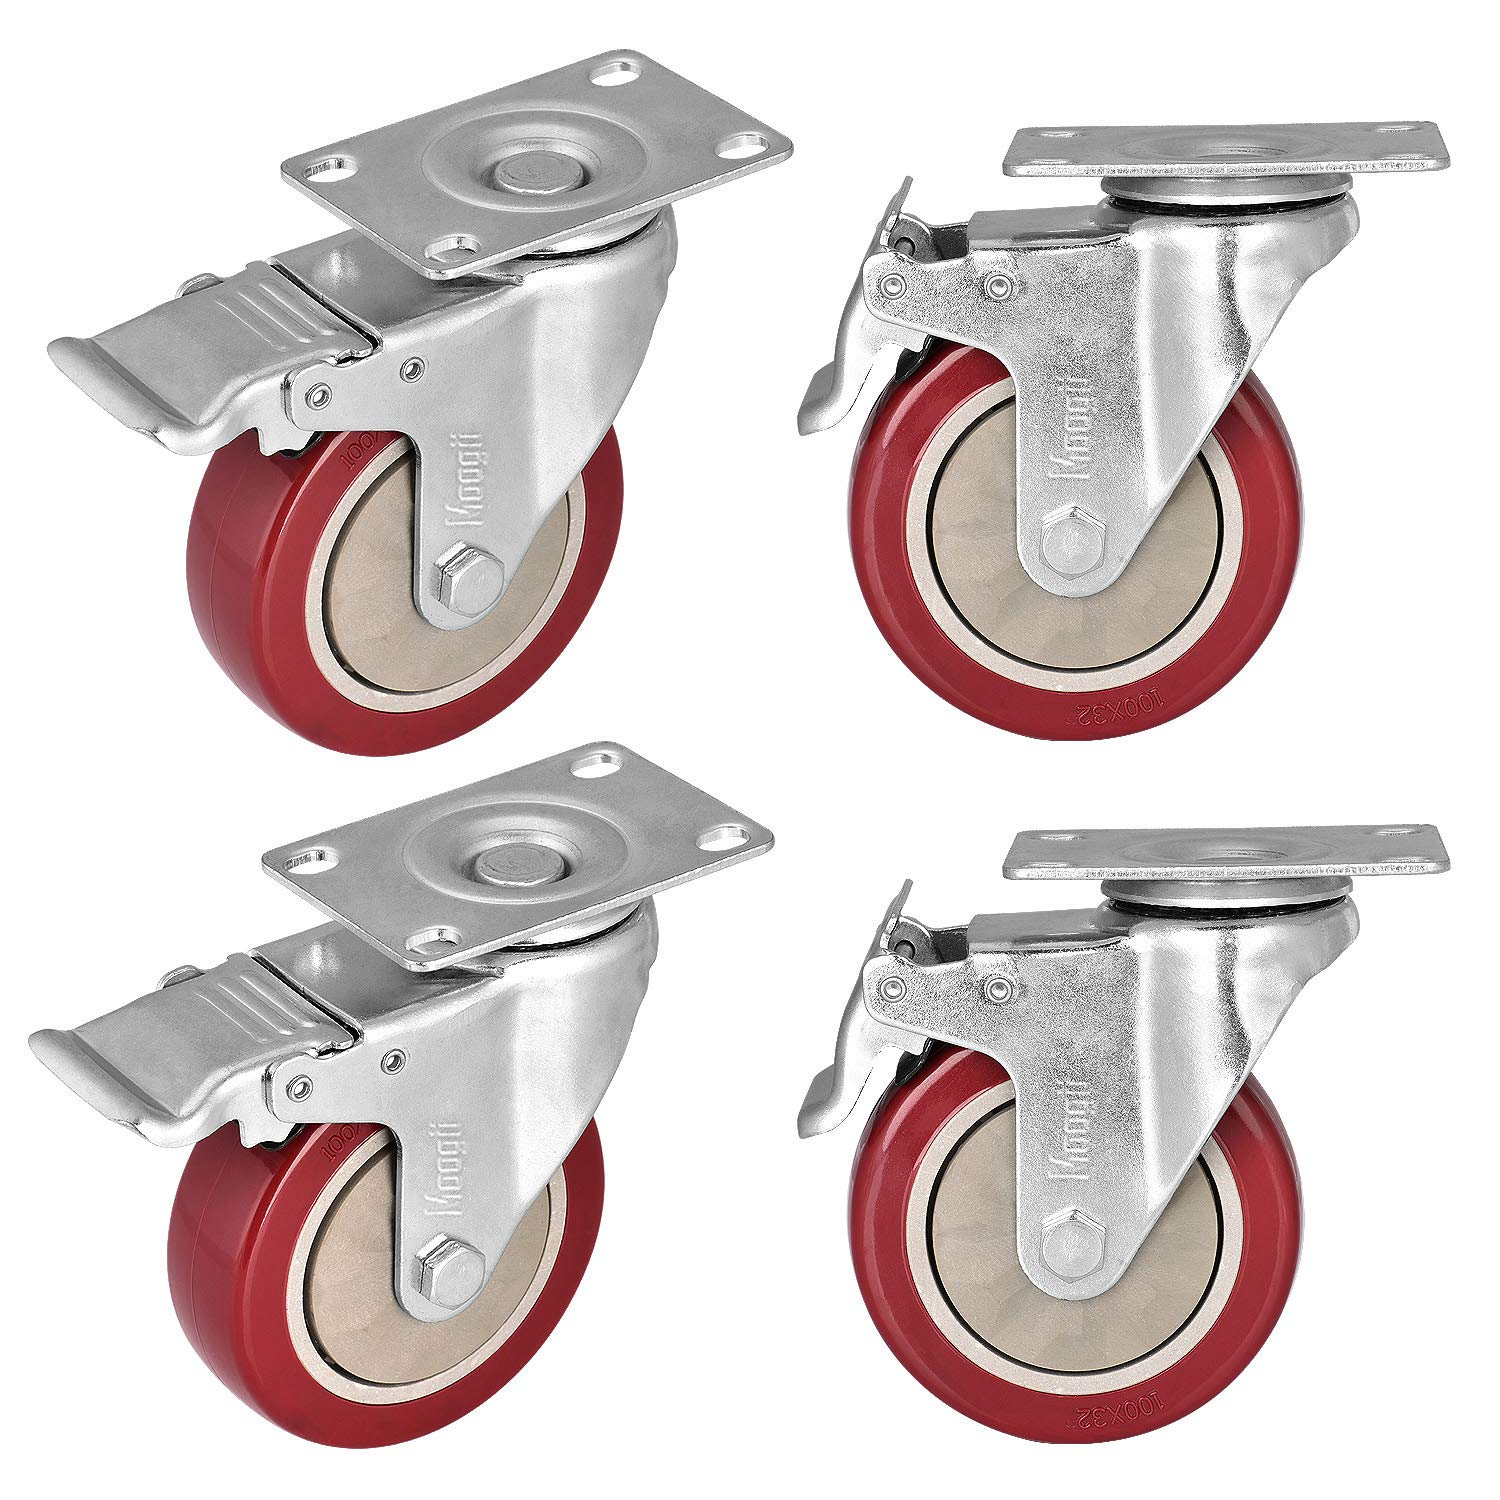 4'' Swivel Rubber Caster Wheels with Safety Dual Locking Heavy Duty 1200lbs Casters Set of 4 with Brake by Moogiitools